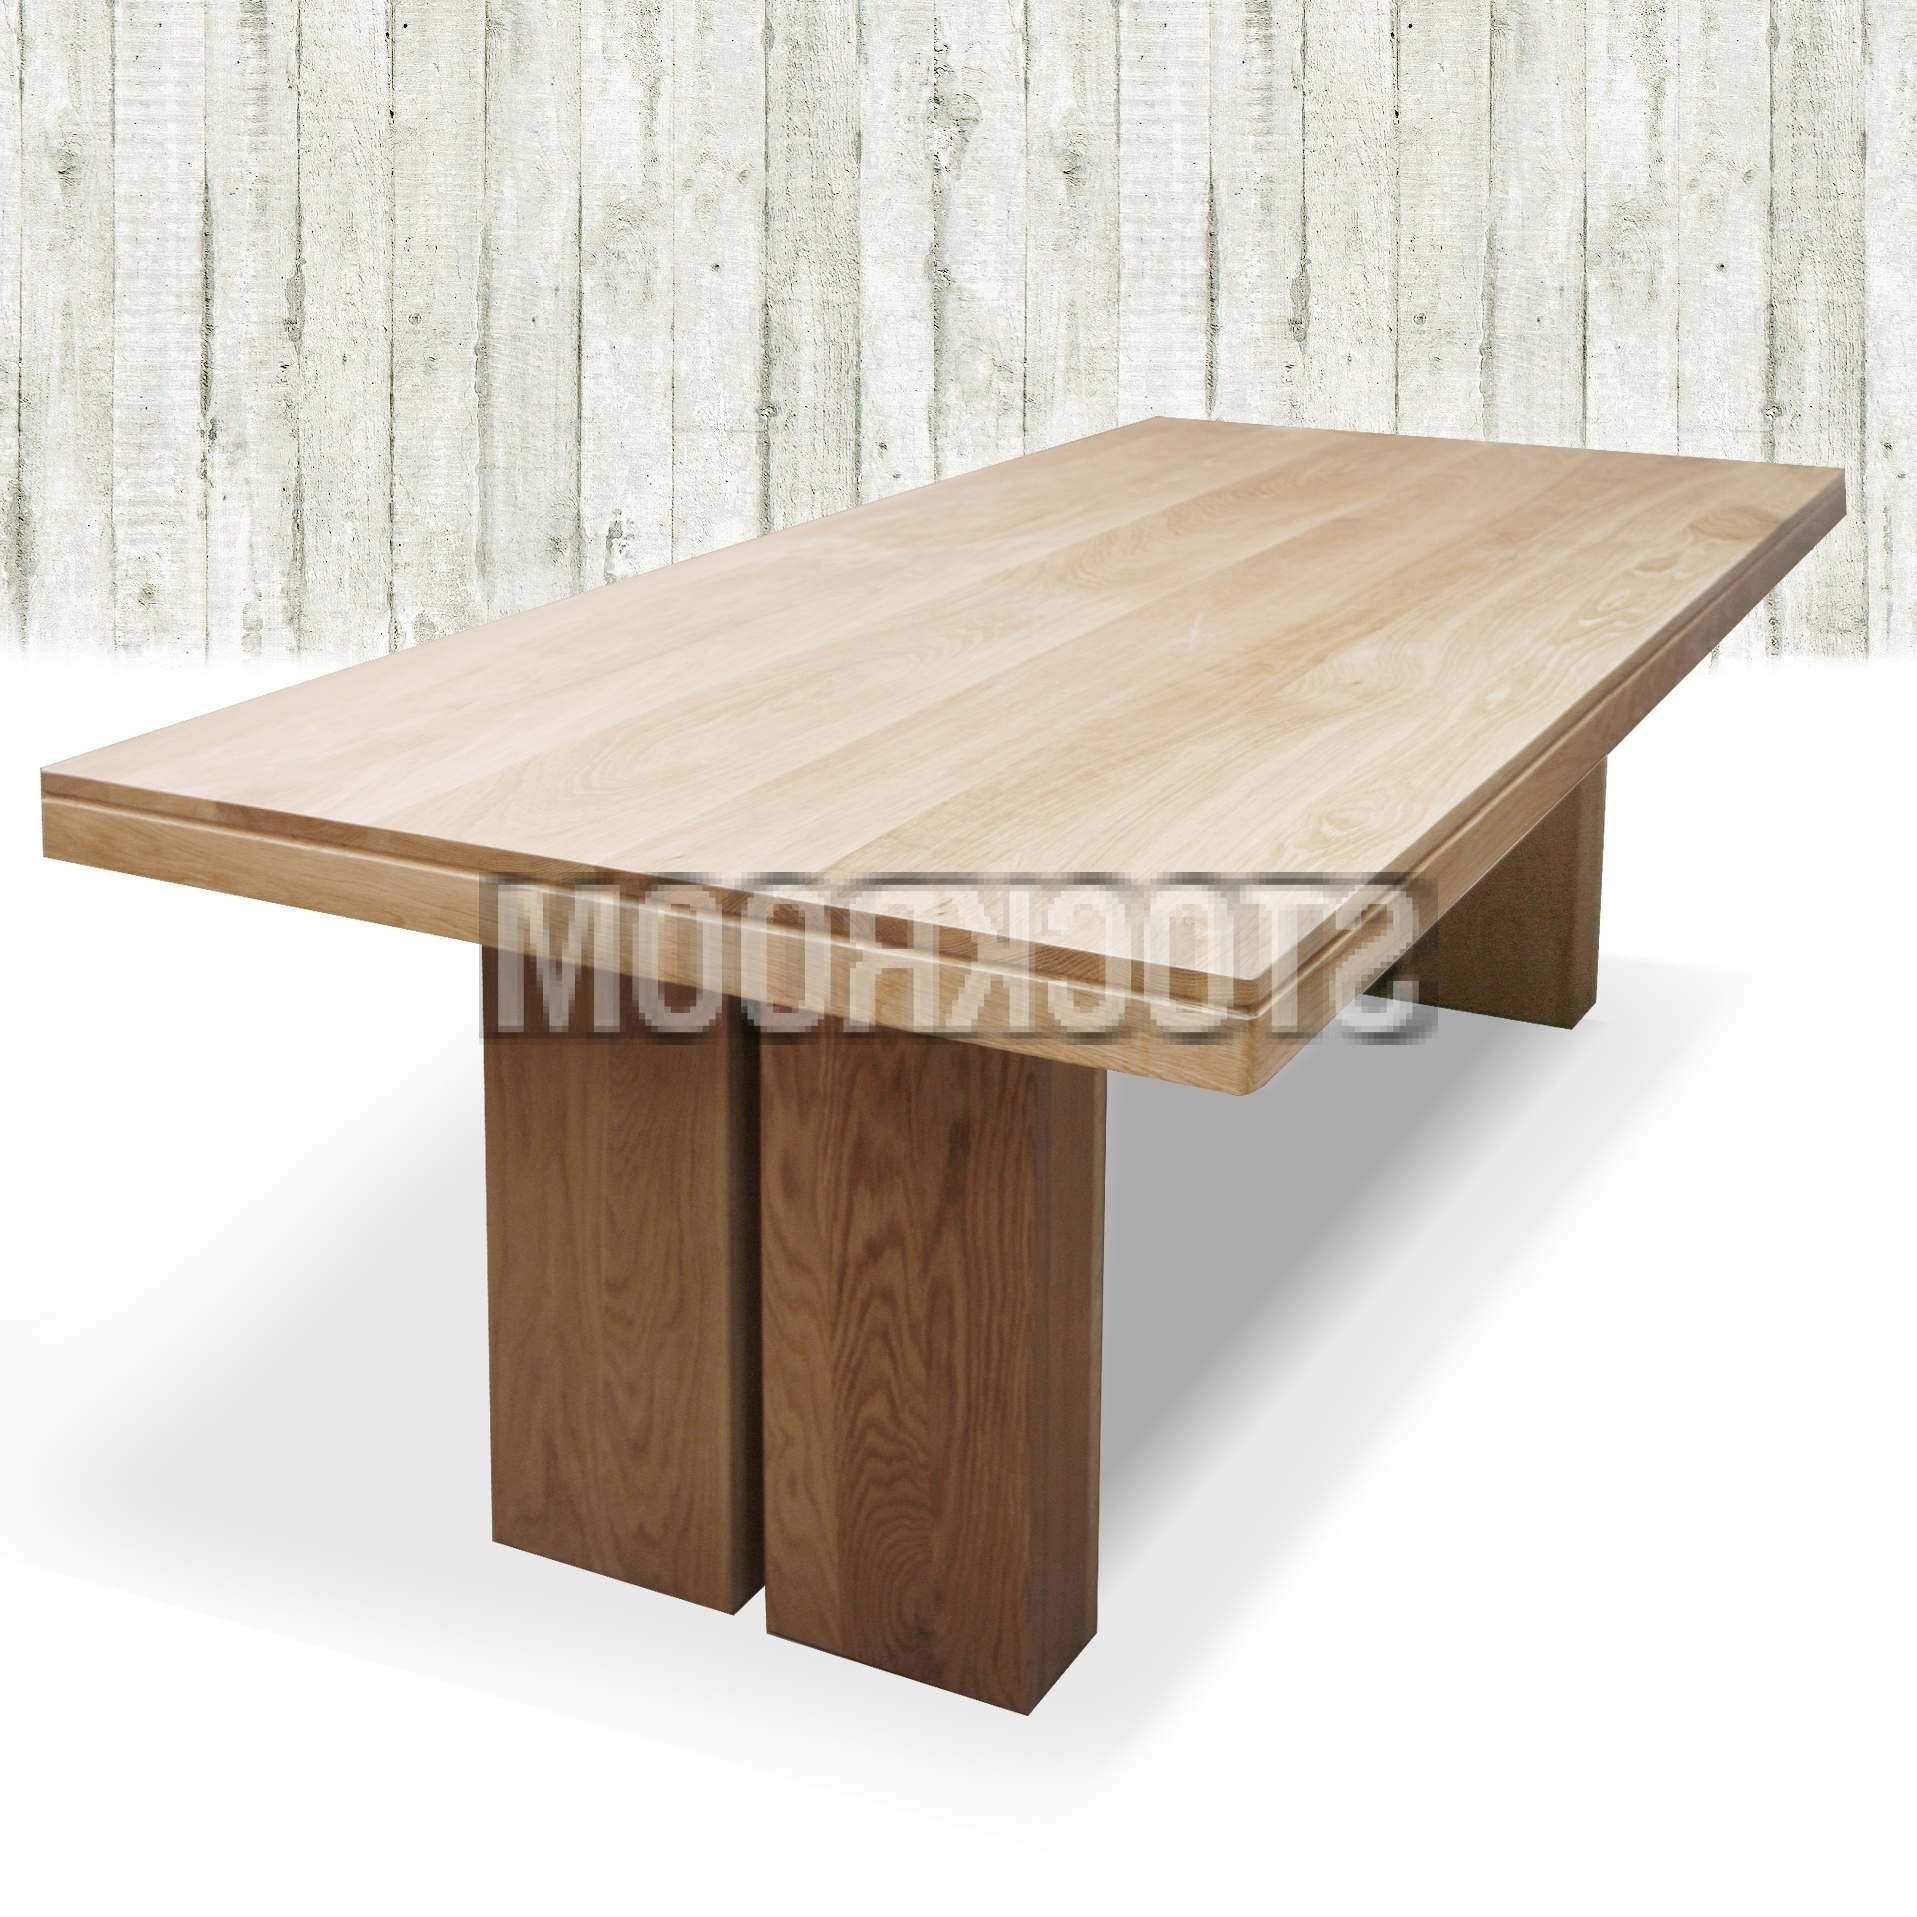 Well Known Noah Dining Tables Inside Noah Solid Oak Wood Dining Table : Stockroom Hong Kong Contemporary (View 25 of 25)